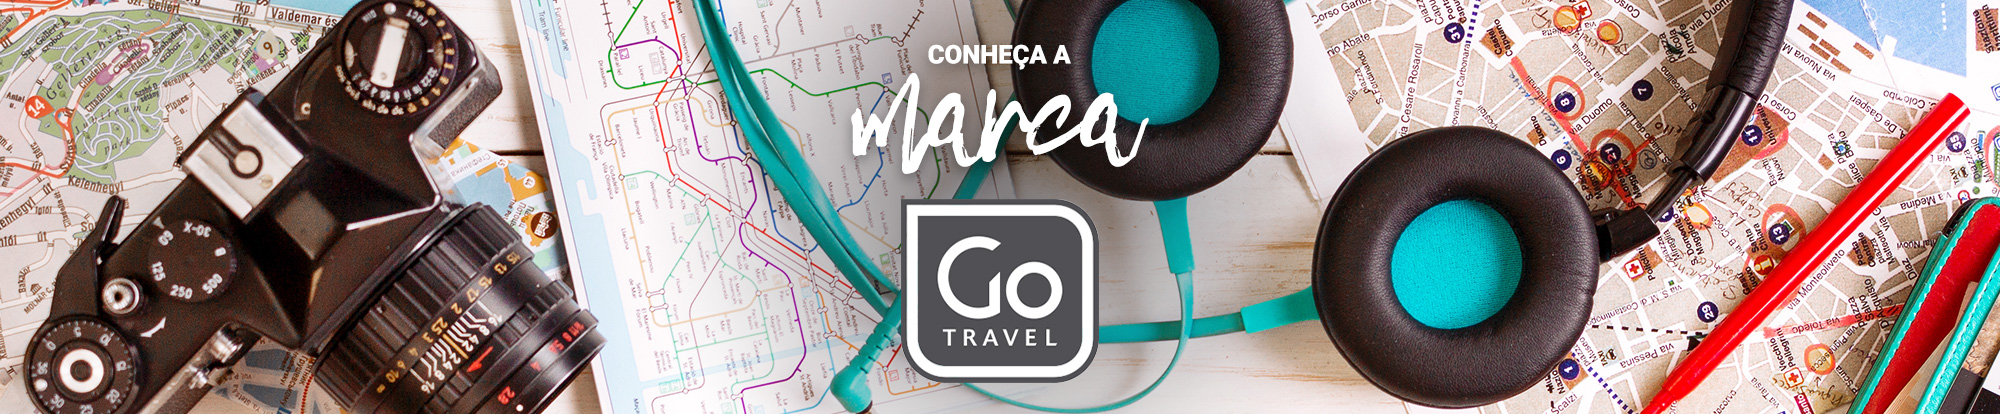 Banner Marca Go Travel